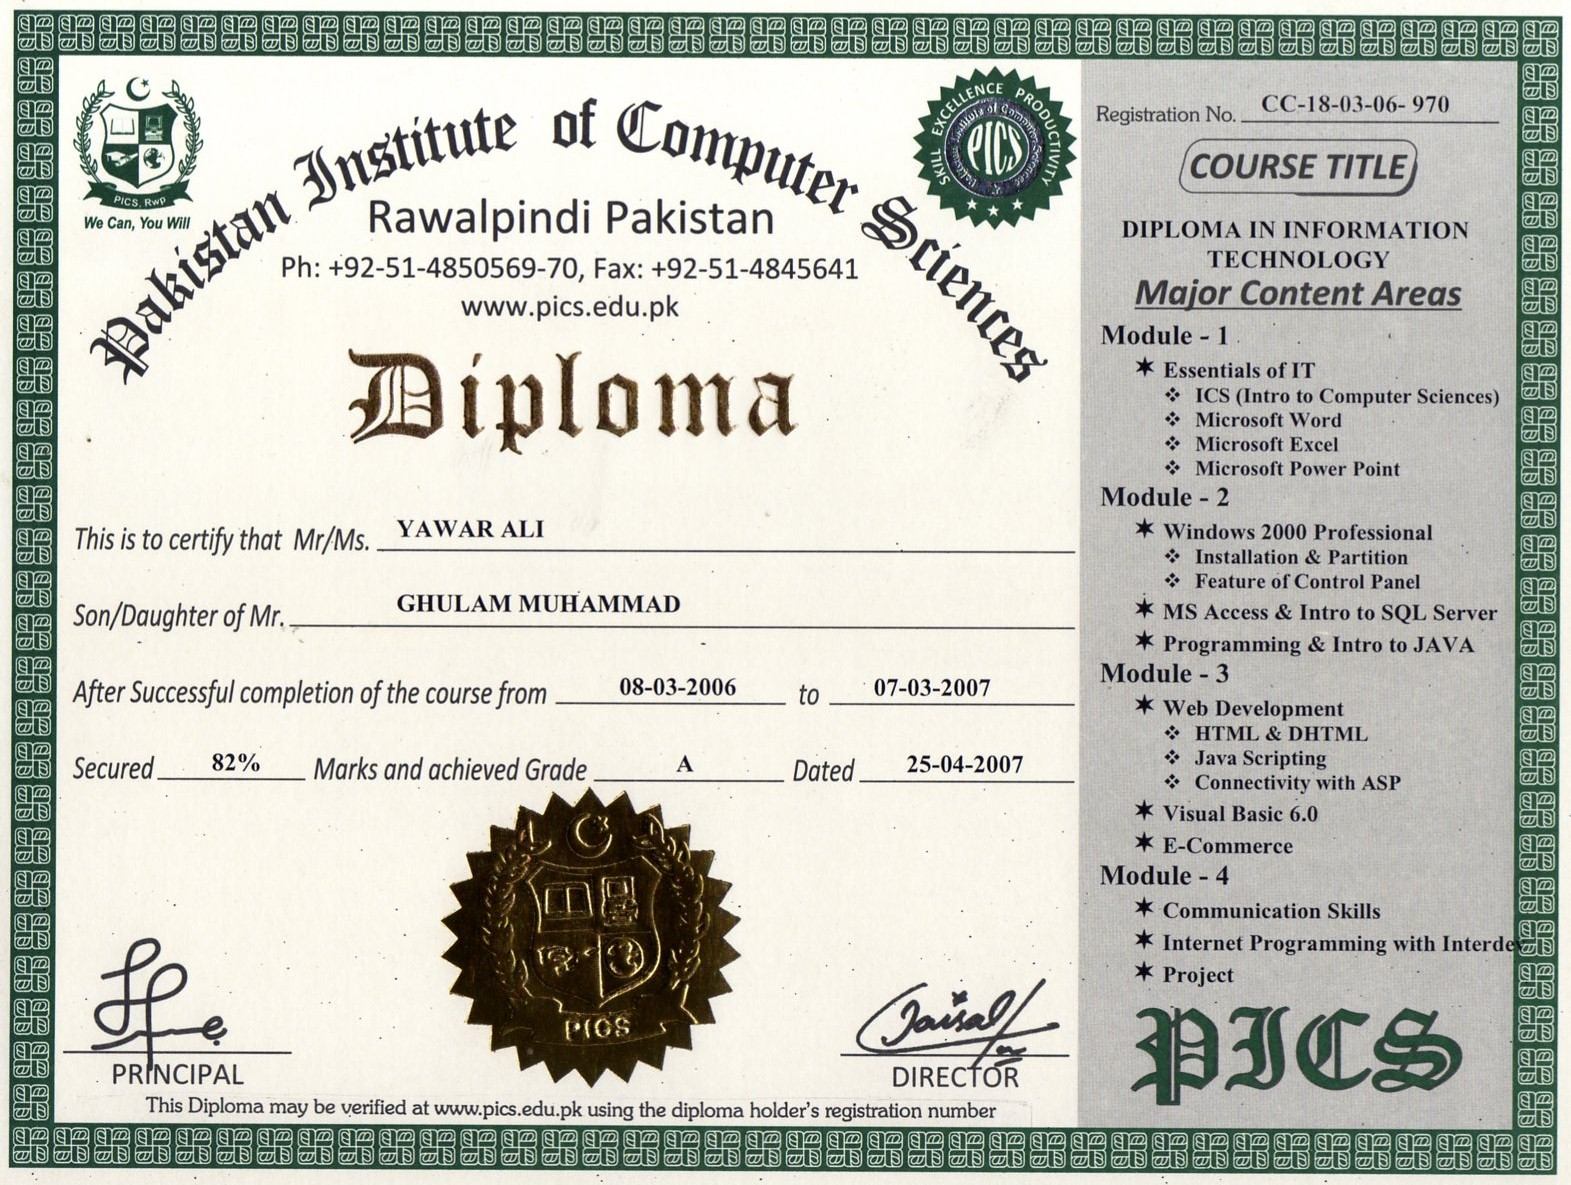 Sample diploma certificate click here for list of certificates diplomas our certified students yelopaper Choice Image